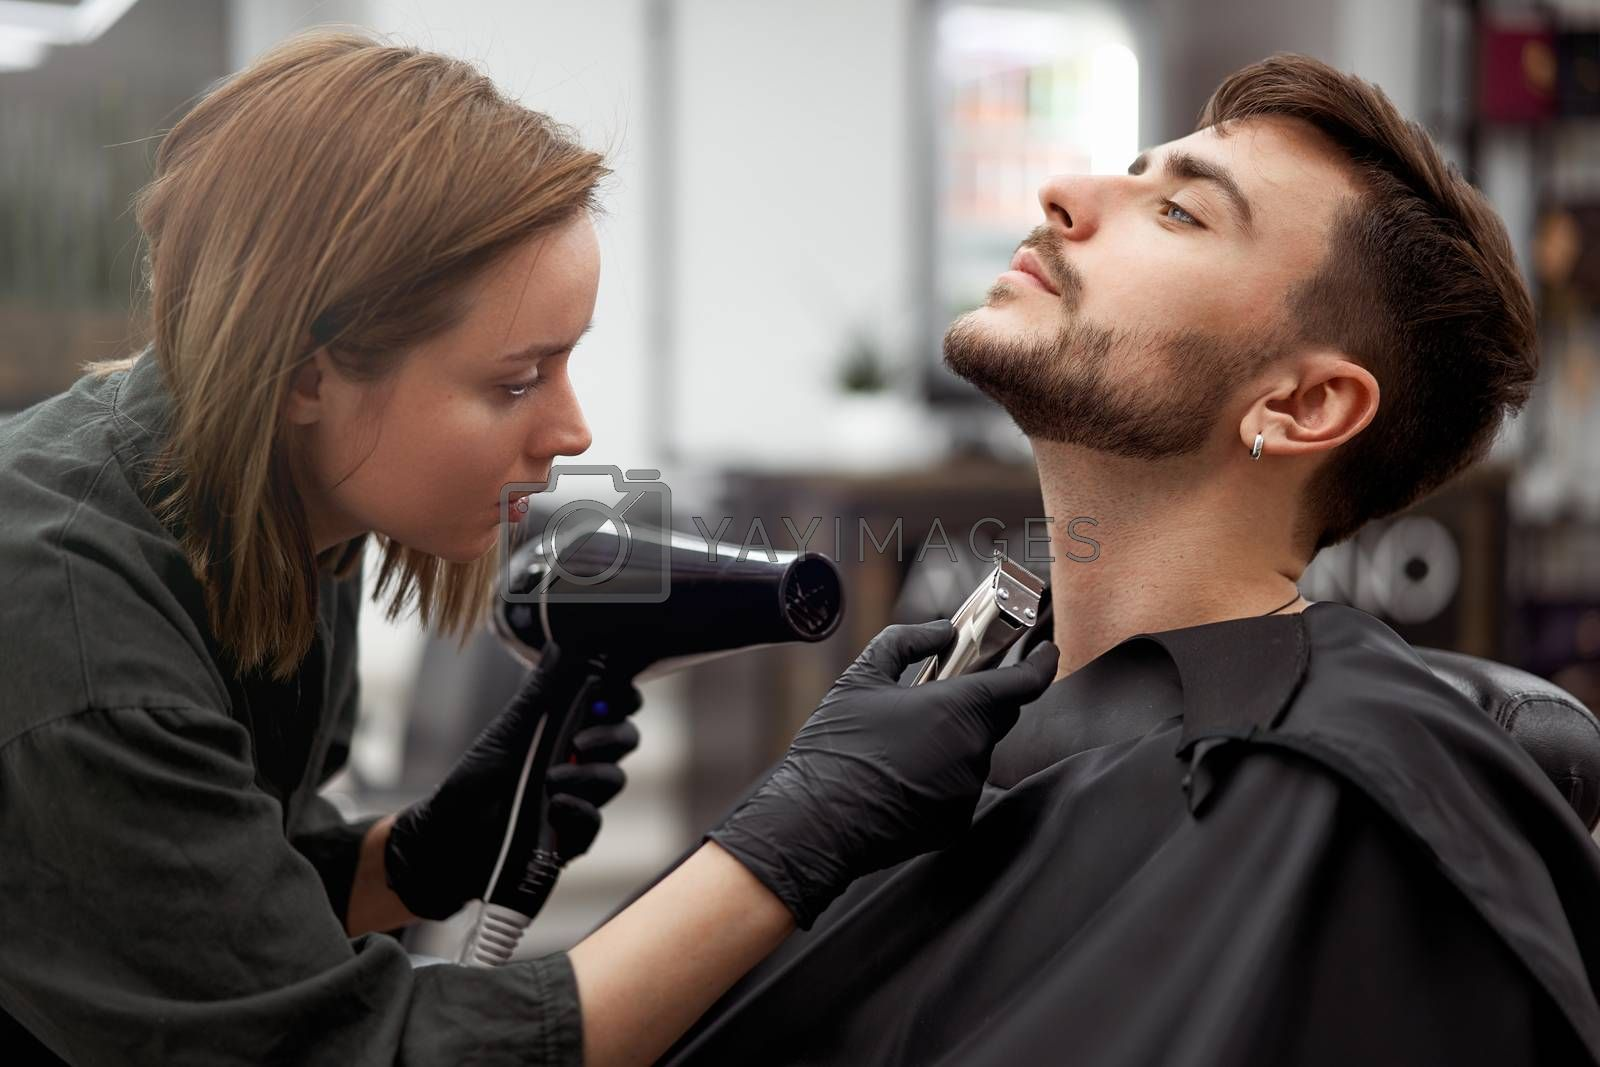 Stylish man sitting barber shop Hairstylist Hairdresser Woman blow dry his hair Portrait handsome happy young bearded caucasian guy getting trendy haircut Attractive barber girl serving client